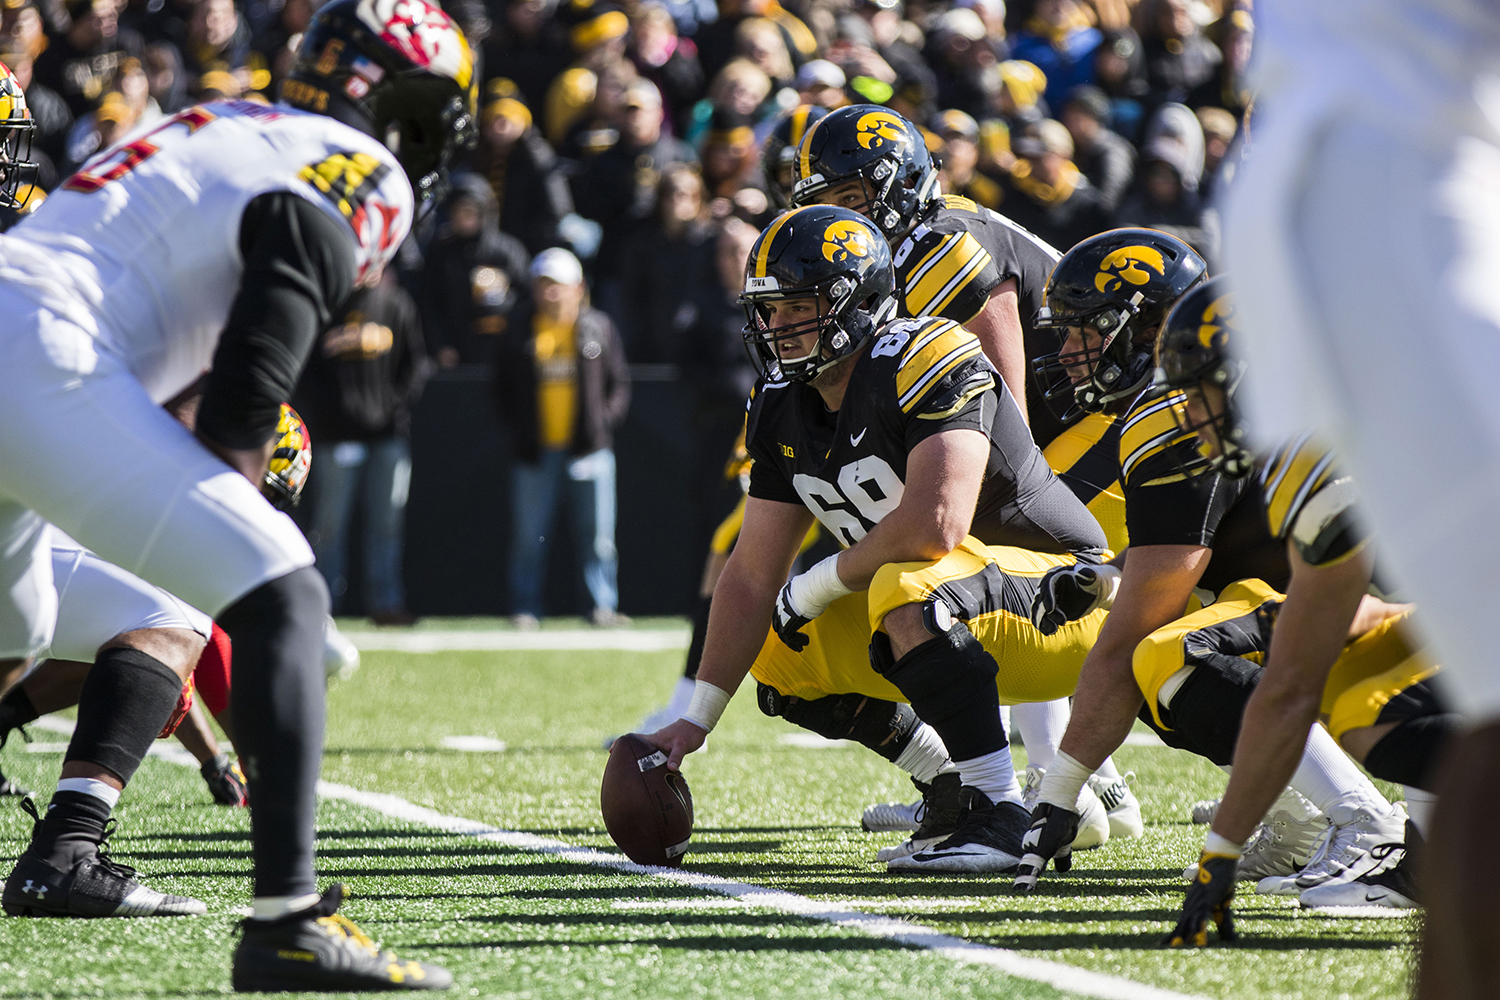 Iowa offensive lineman Keegan Render waits at the line of scrimmage during the Iowa/Maryland homecoming football game at Kinnick Stadium on Saturday, Oct. 20, 2018. The Hawkeyes defeated the Terrapins, 23-0.